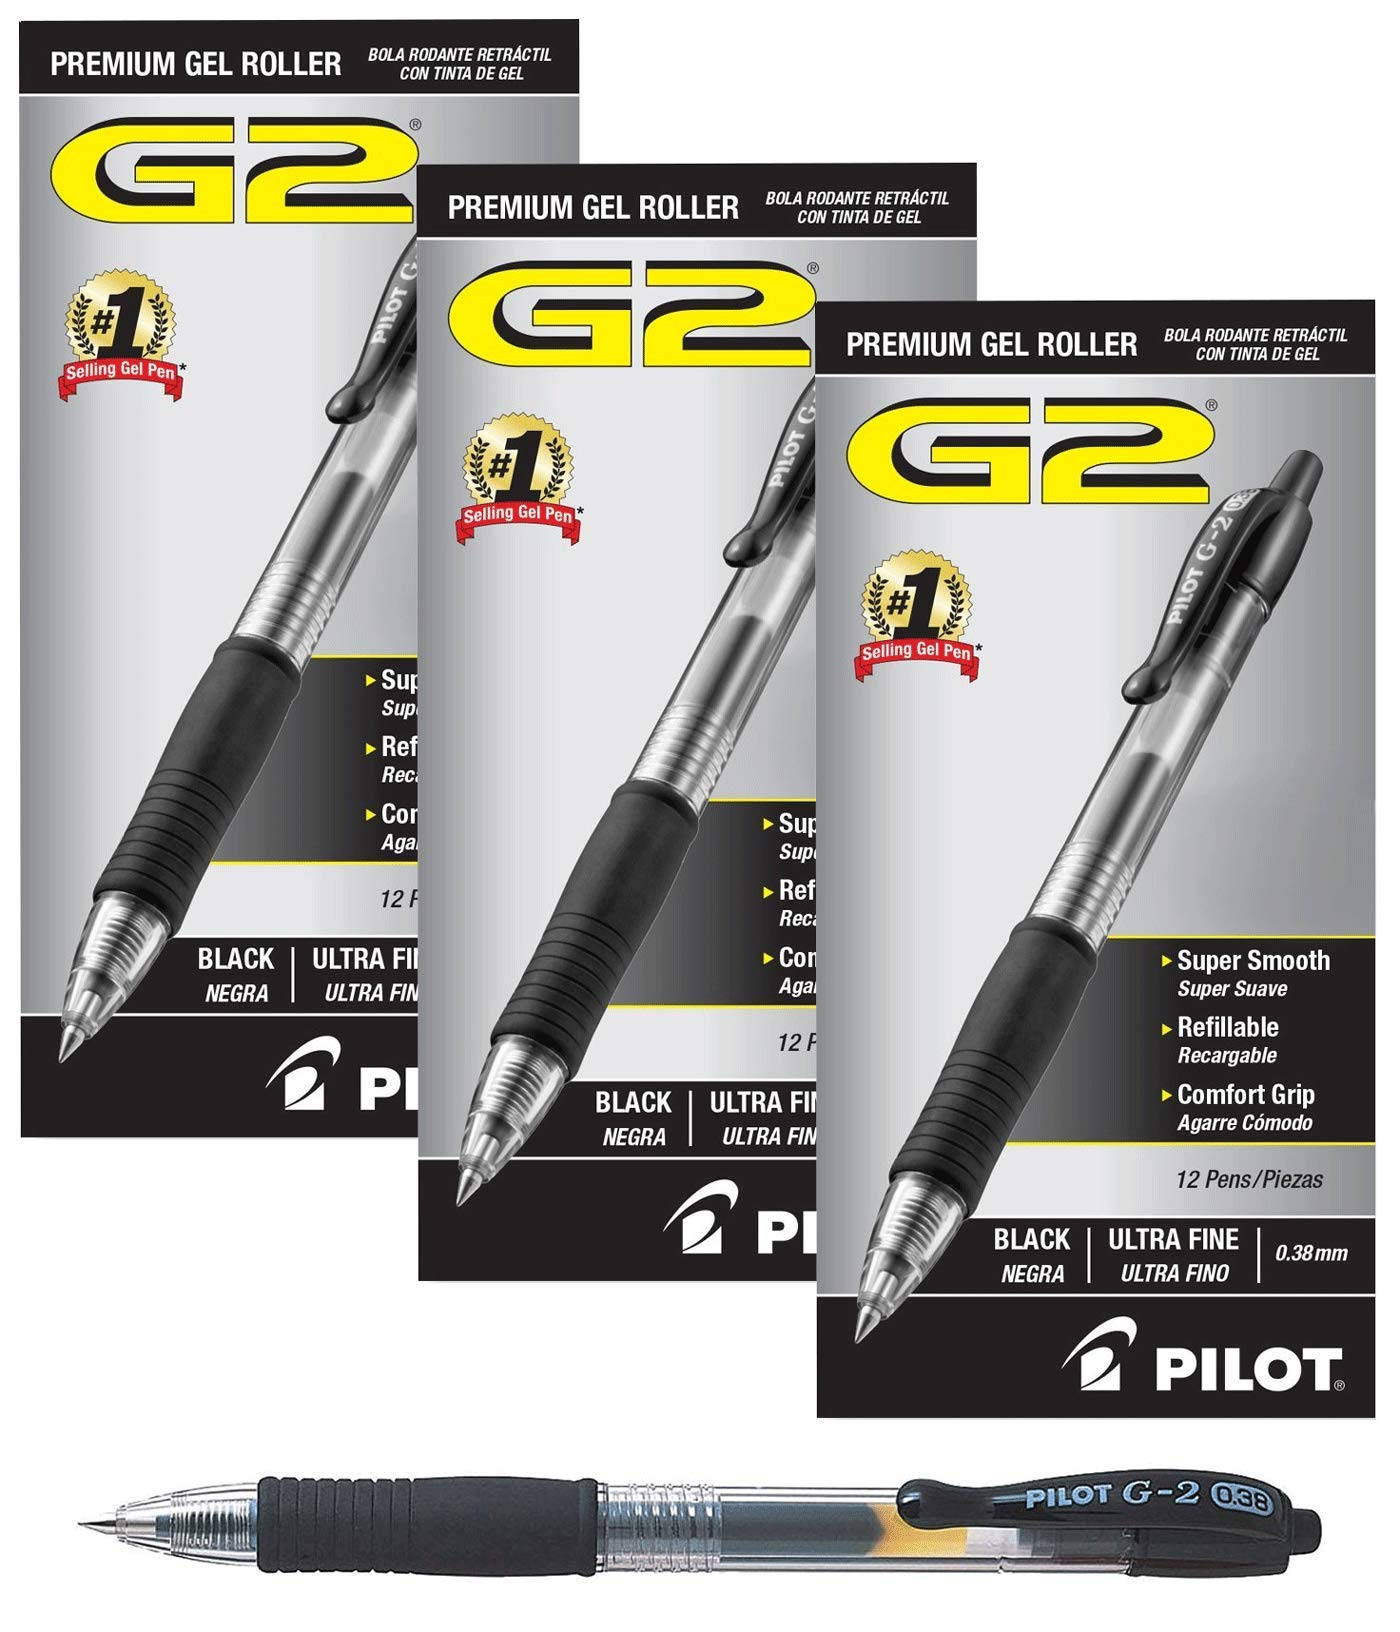 Pilot G2 Retractable Premium Gel Ink Roller Ball Pens Ultra Fine 3 Dozen Black ; Retractable, Refillable & Premium Comfort Grip; Smooth Lines to the End of the Page, America's #1 Selling Pen Brand